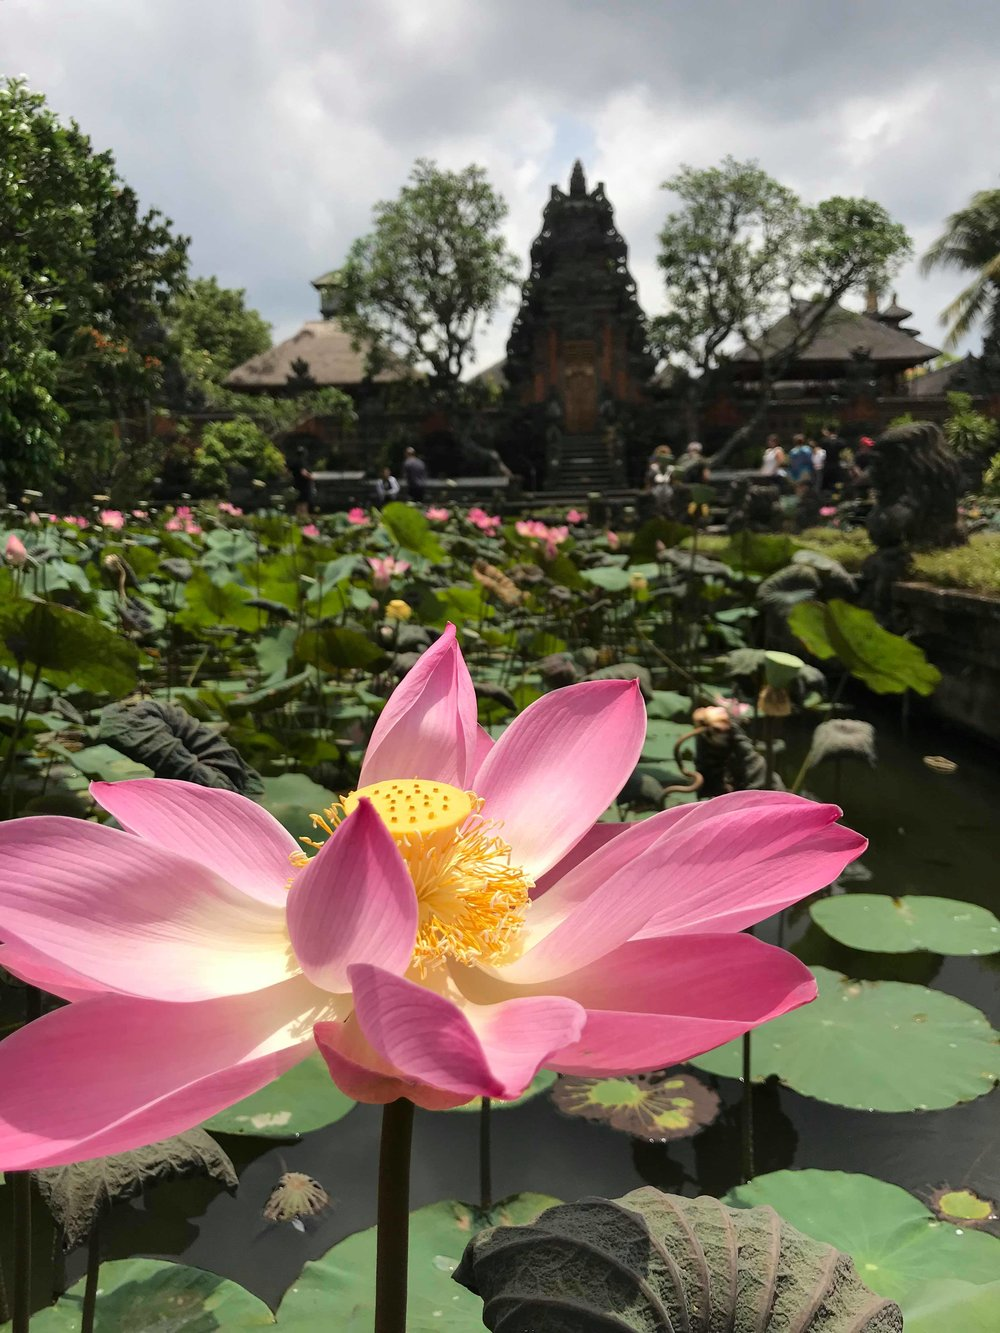 Blooming Lotus, Saraswati Temple: Bali, Indonesia